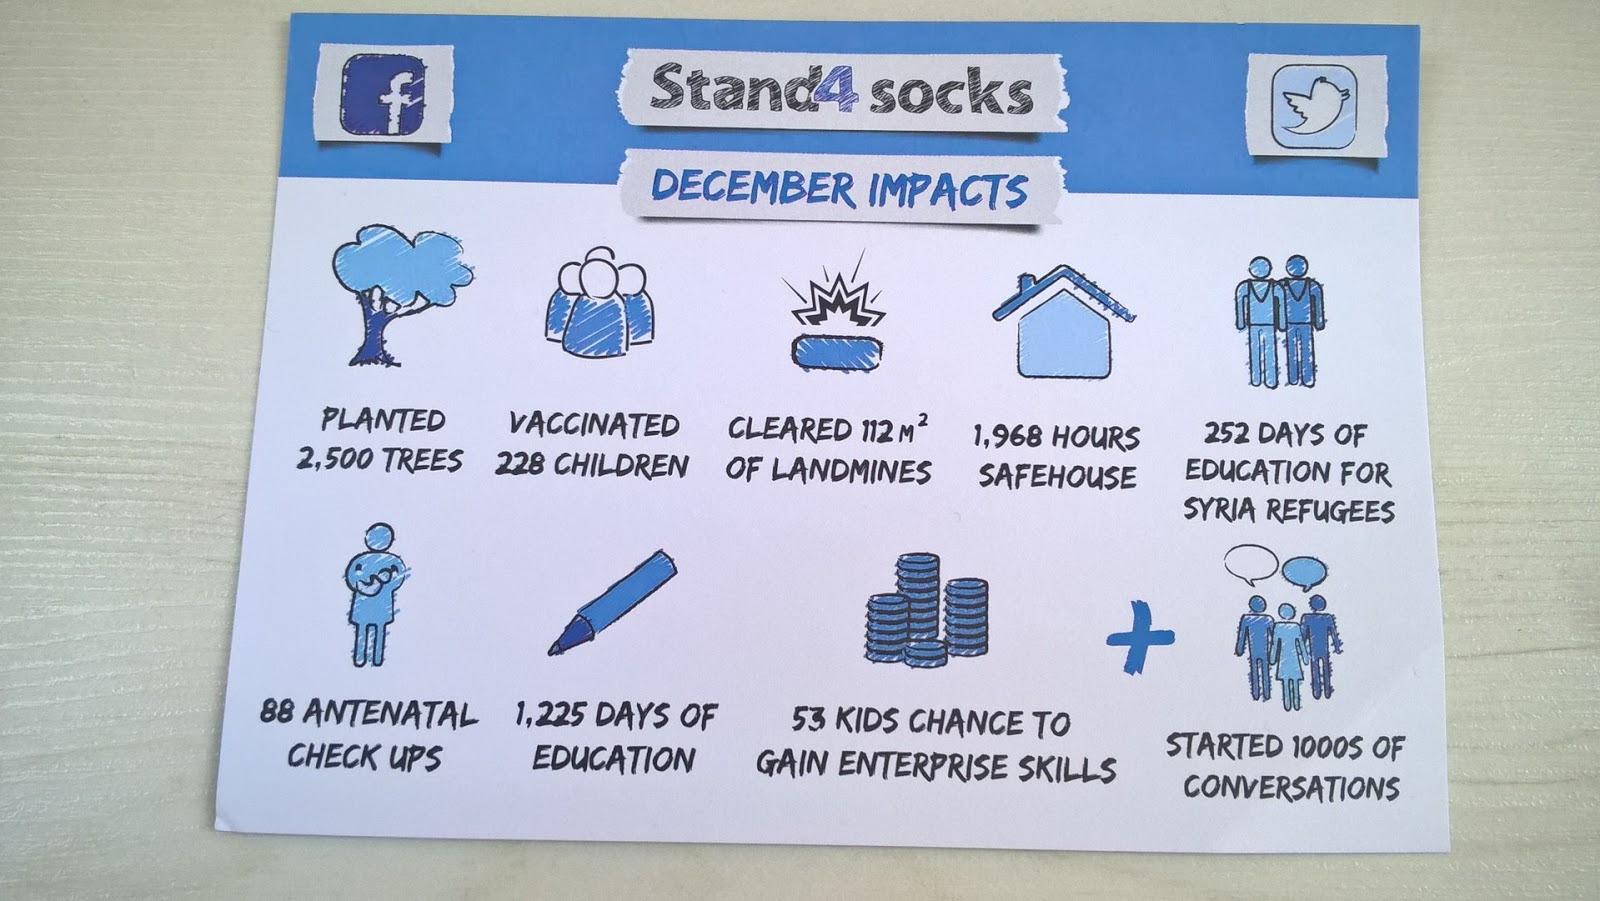 Stand4socks December impacts - motherdistracted.co.uk